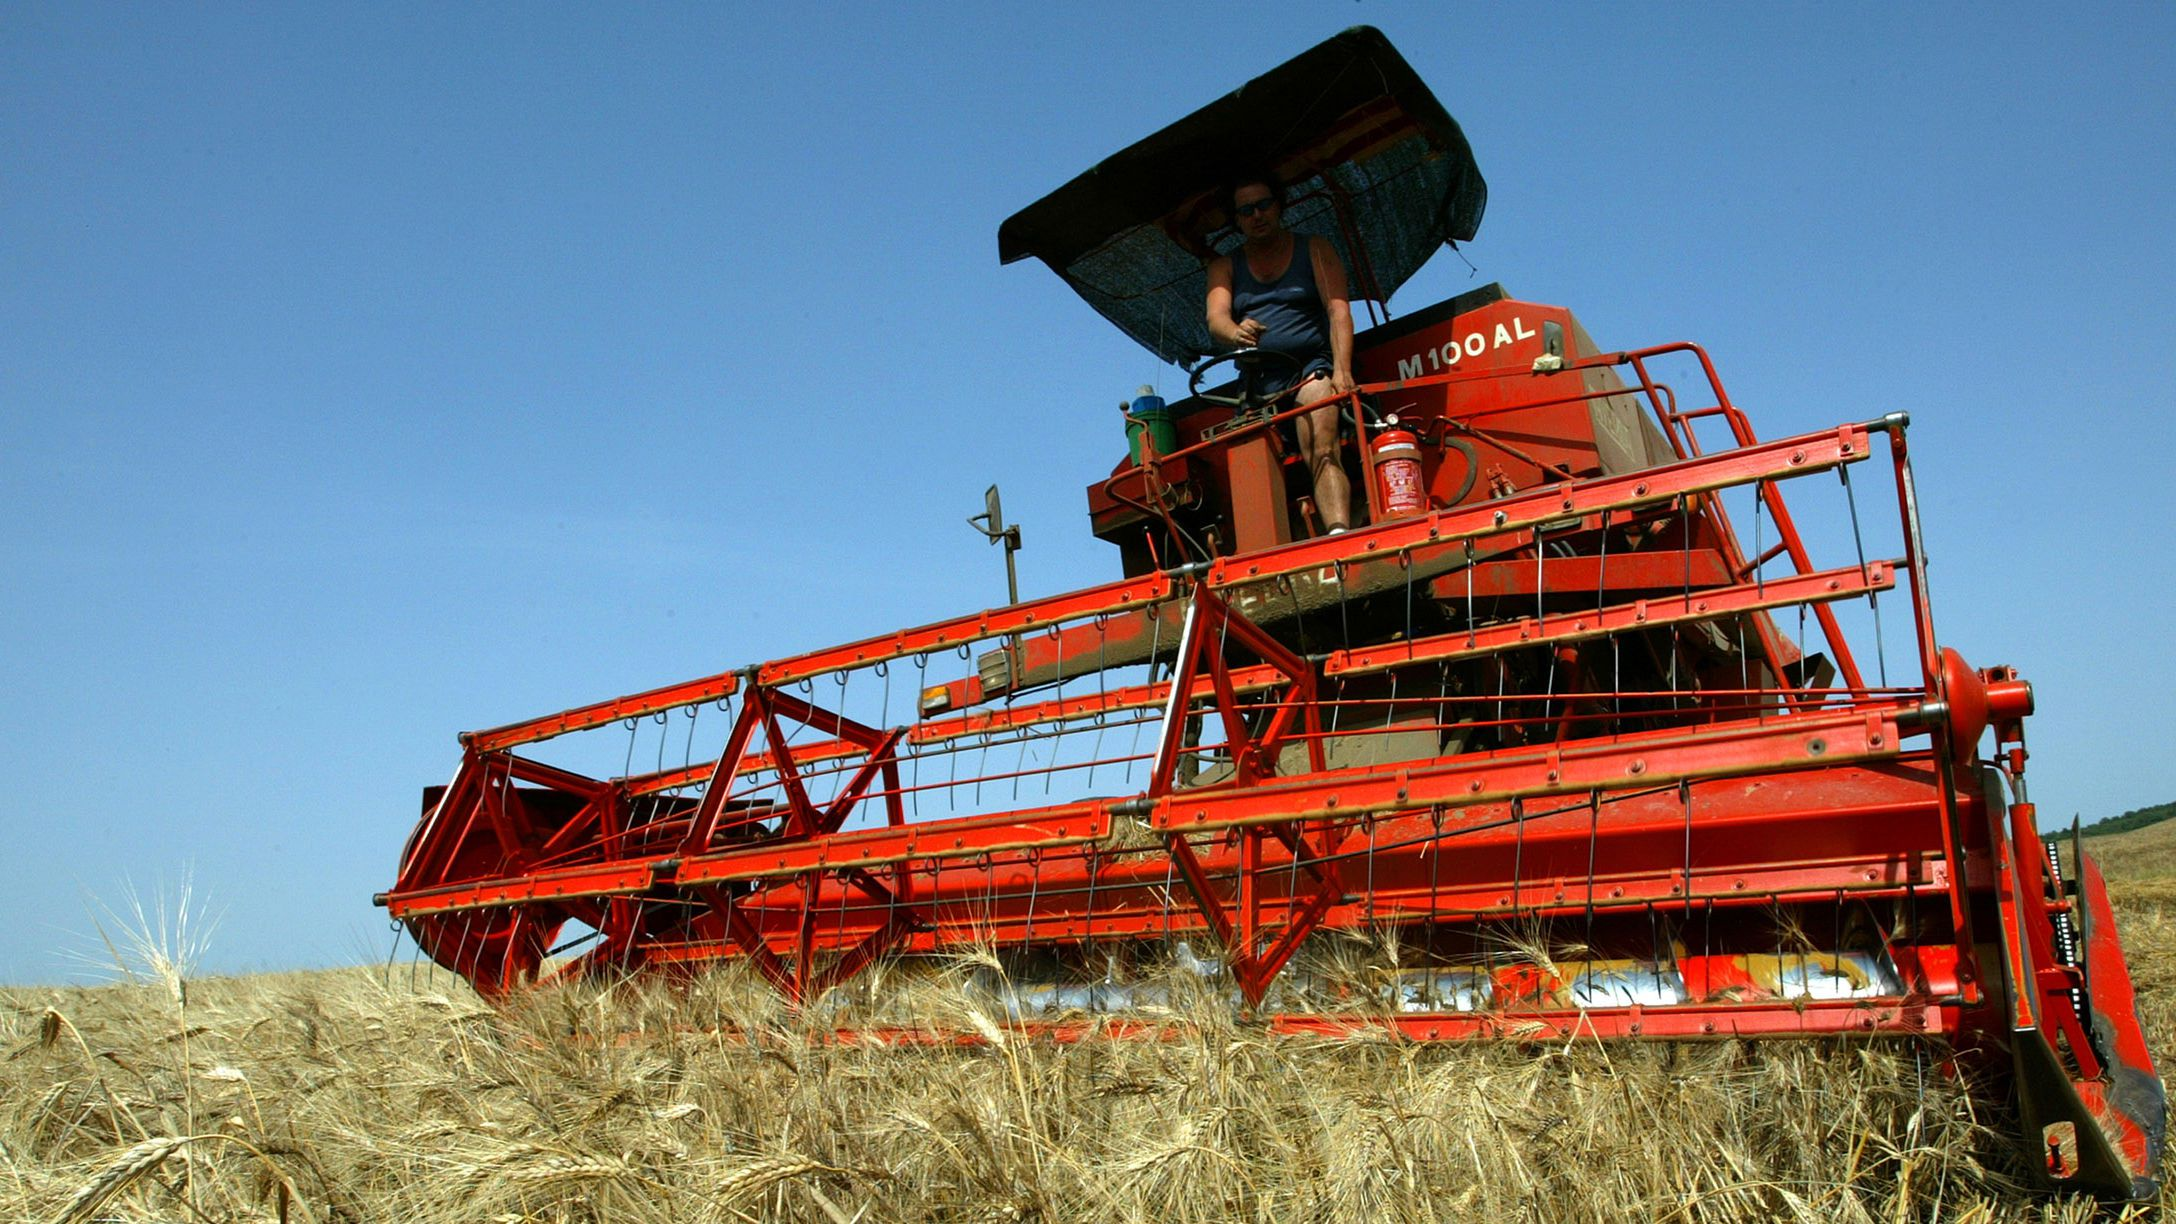 An Italian farmer harvests wheat in Bagno Vignoni near Siena central Italy June 25, 2003. European farm ministers will resume stop-start talks on farm reforms aimed at shaping European agriculture for the next decade. CPROD REUTERS/Max Rossi MR